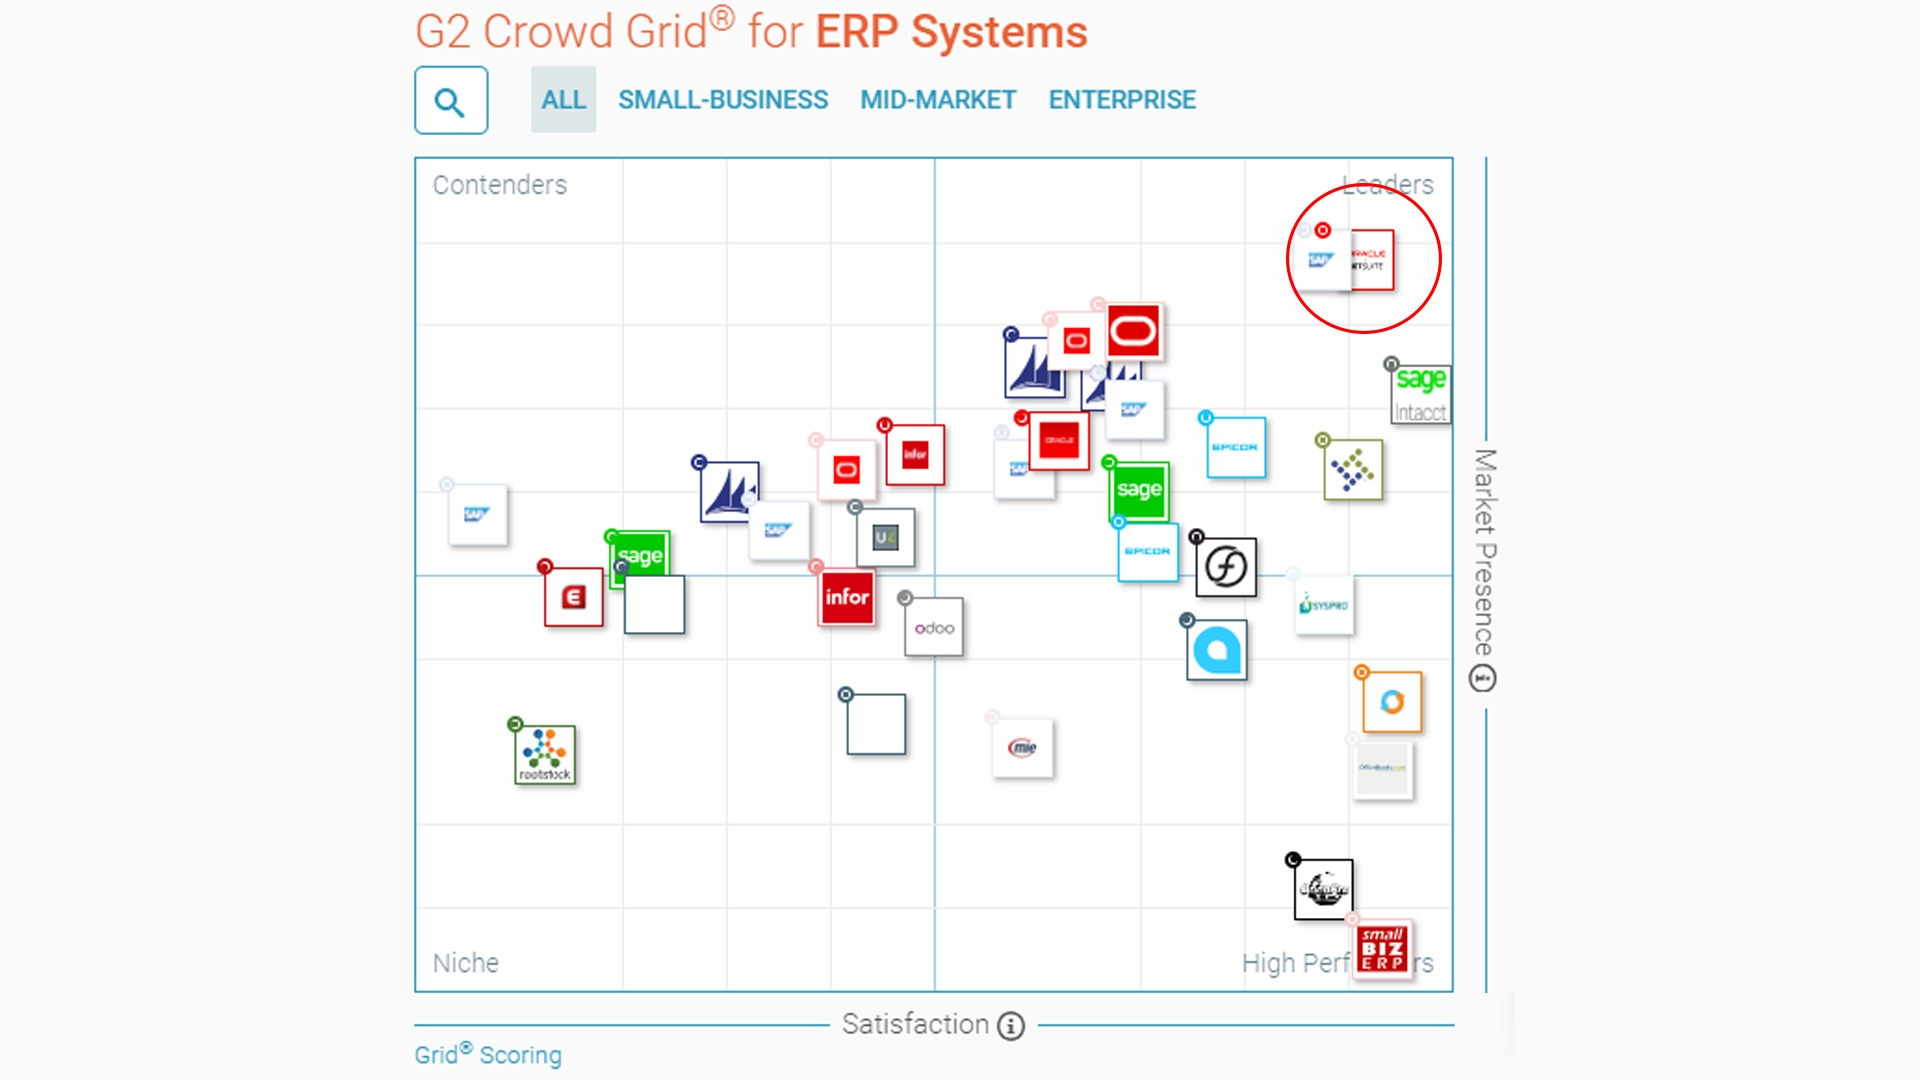 G2 Crowd Grid for ERP Systems